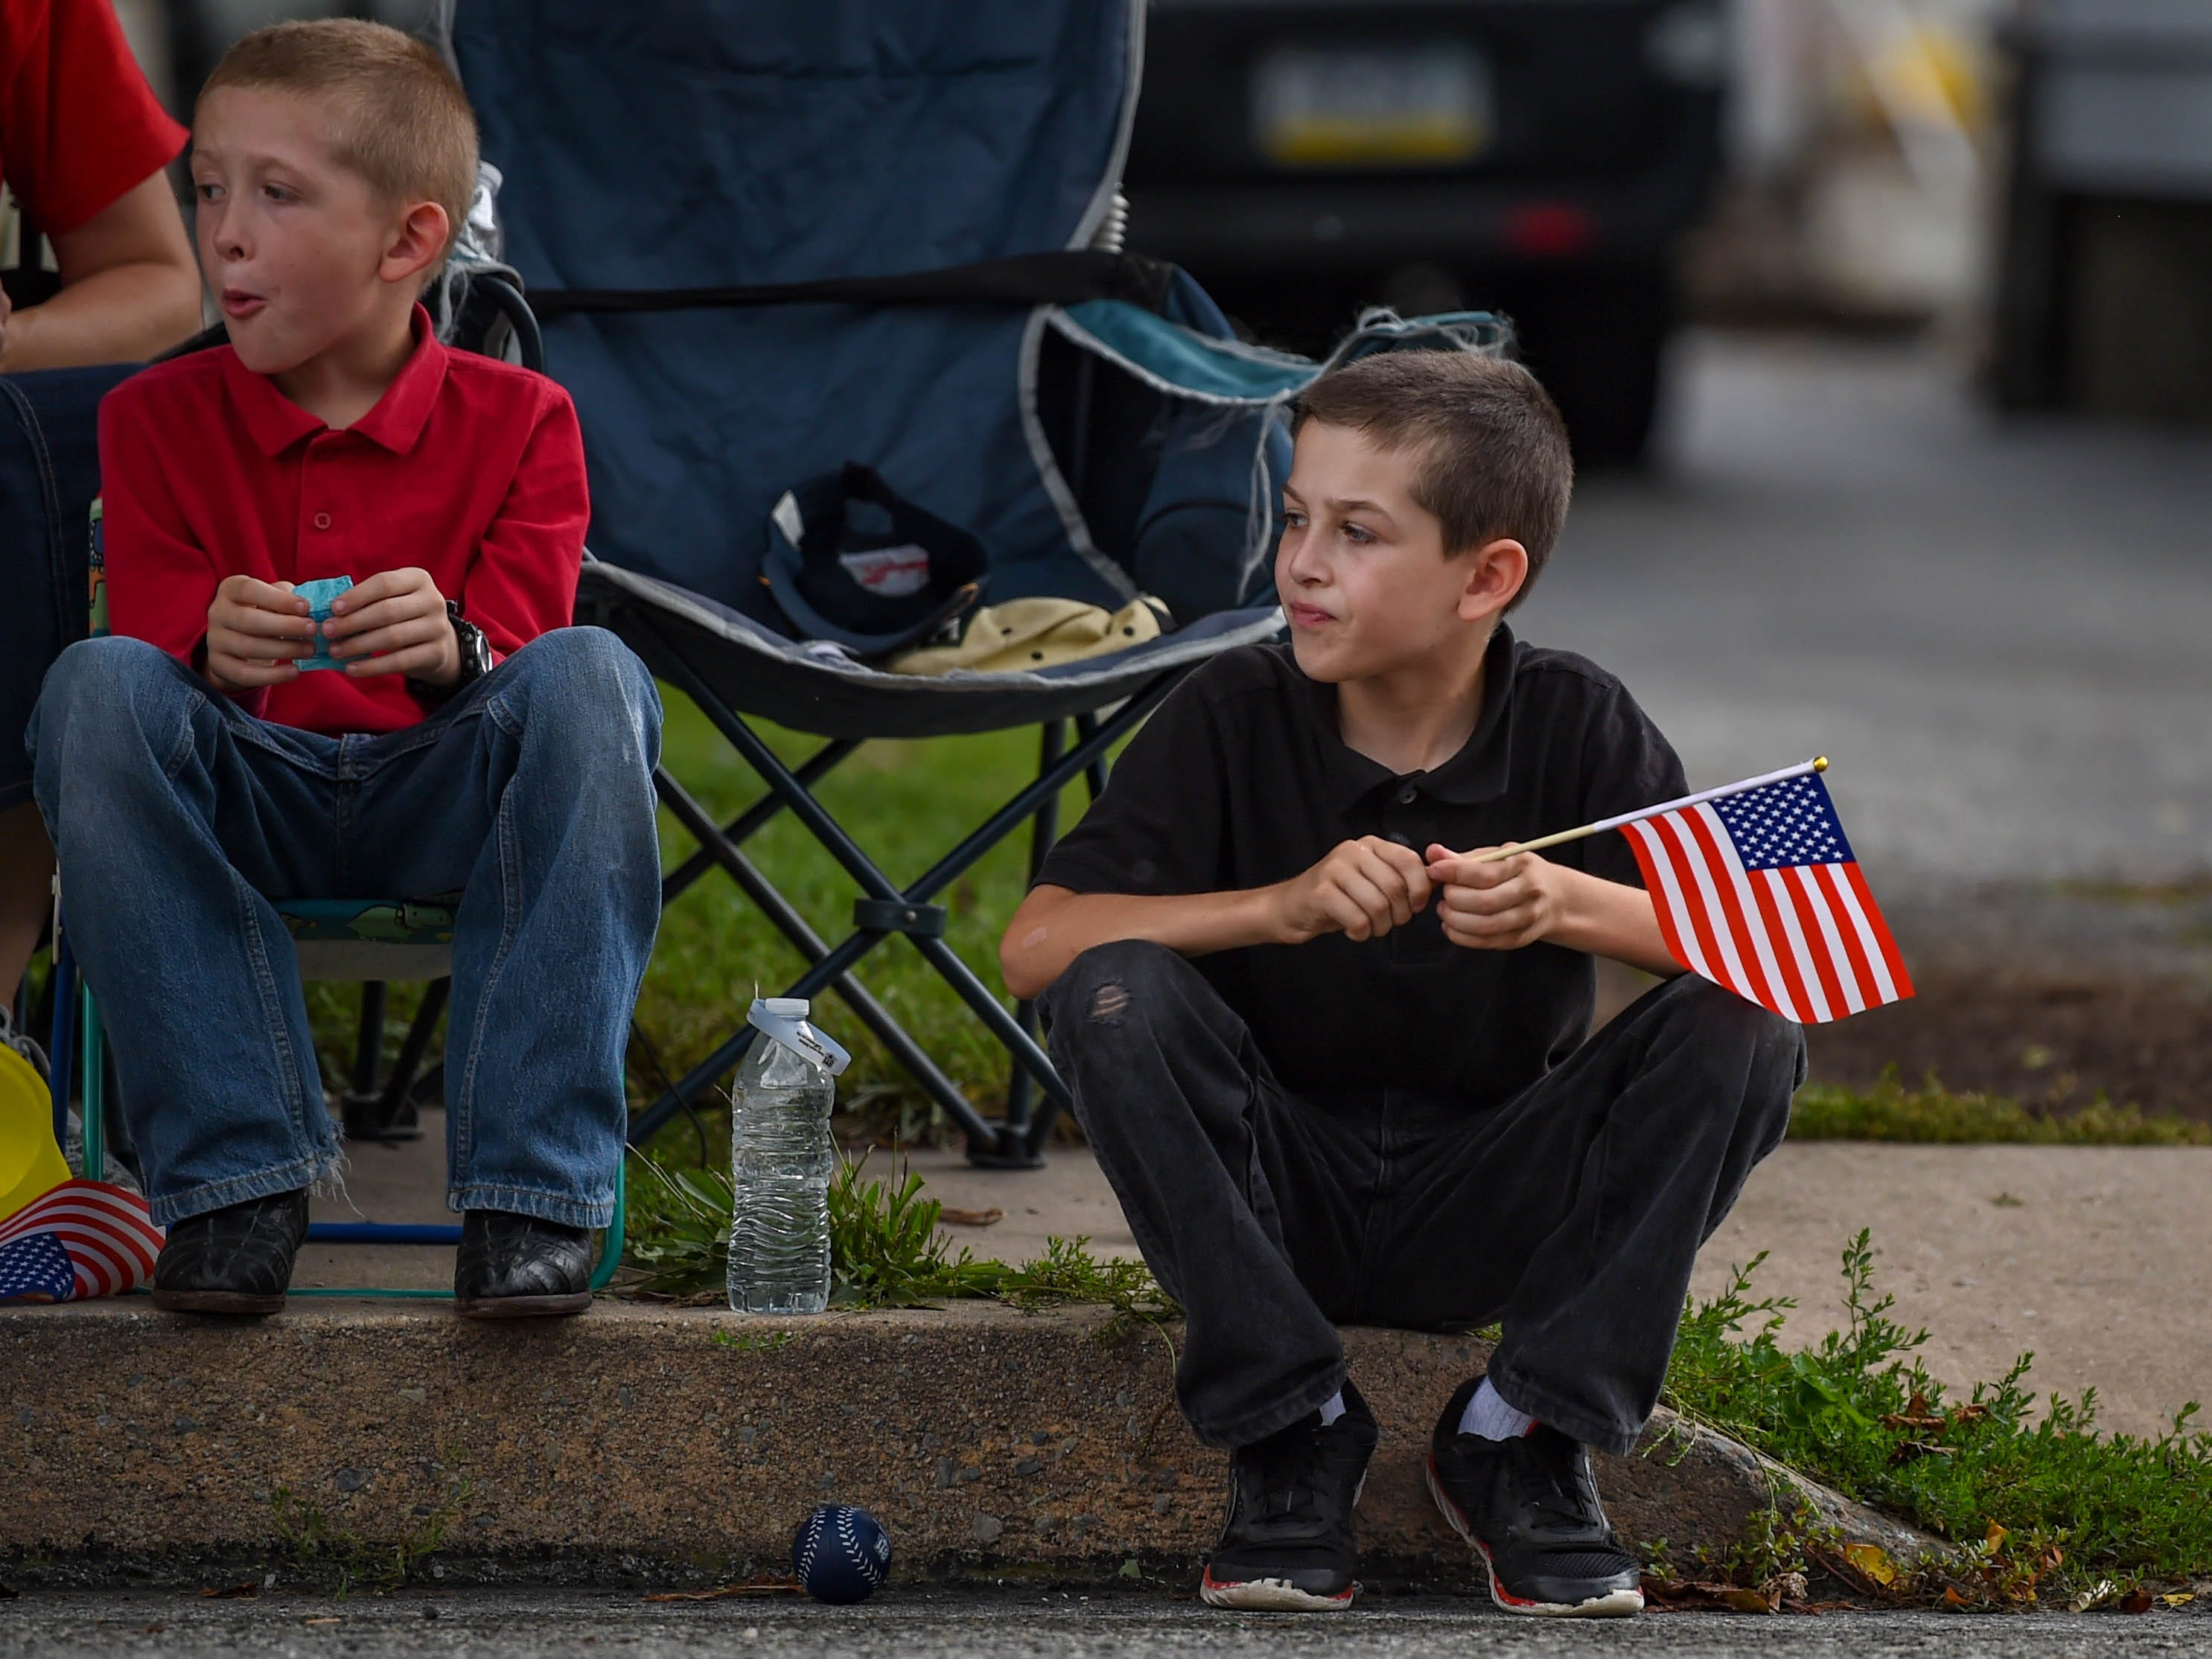 Young parade goers eagerly wait to see what's next during the York County Fireman's Parade, celebrating Alert Fire Company's 100th year, Saturday, August 18, 2018.